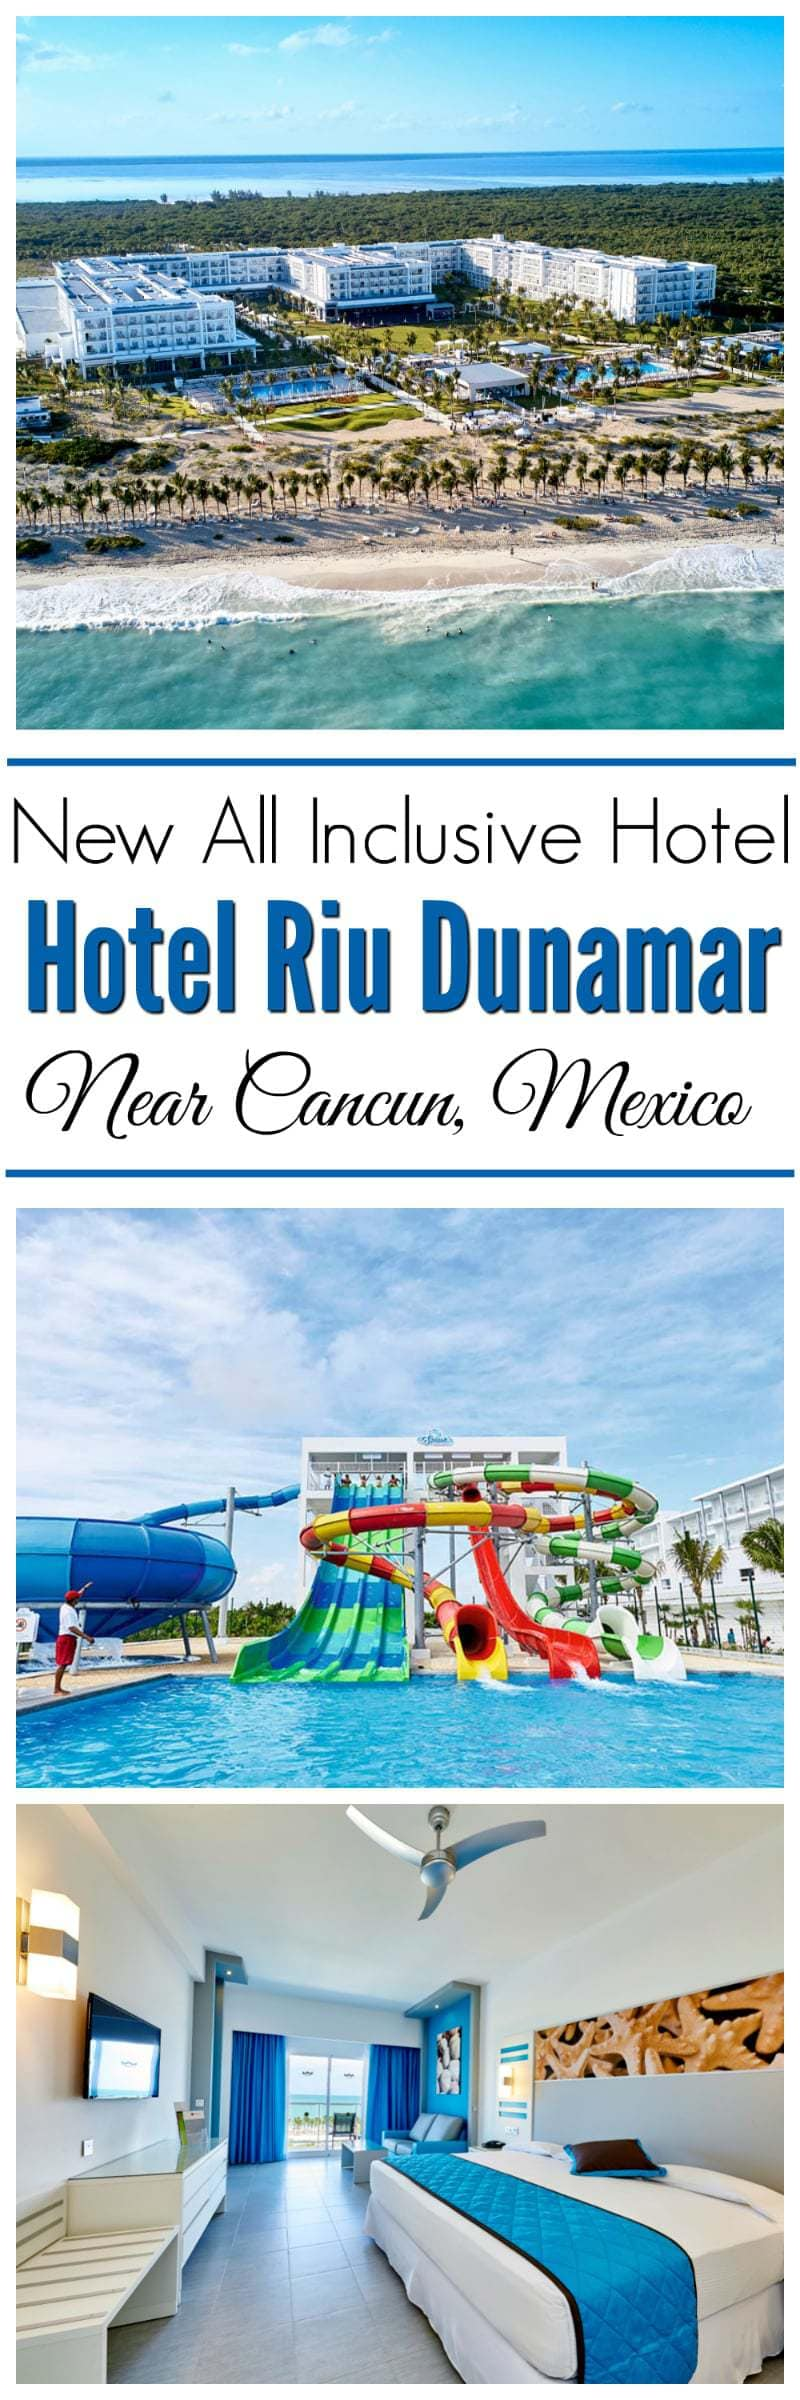 Hotel Riu Dunamar is located on the gorgeous golden sands of Costa Mujere. Vacationing here has many perks. From RiuLand Kids' Club, Renova Spa, Splash Water World, delicious cuisine and so much more.Riu Dunamar has 740 beautifully designed rooms for you and your whole family to enjoy. #ad #RIUDunamar https://www.southernfamilyfun.com/hotel-riu-dunamar-mexico/